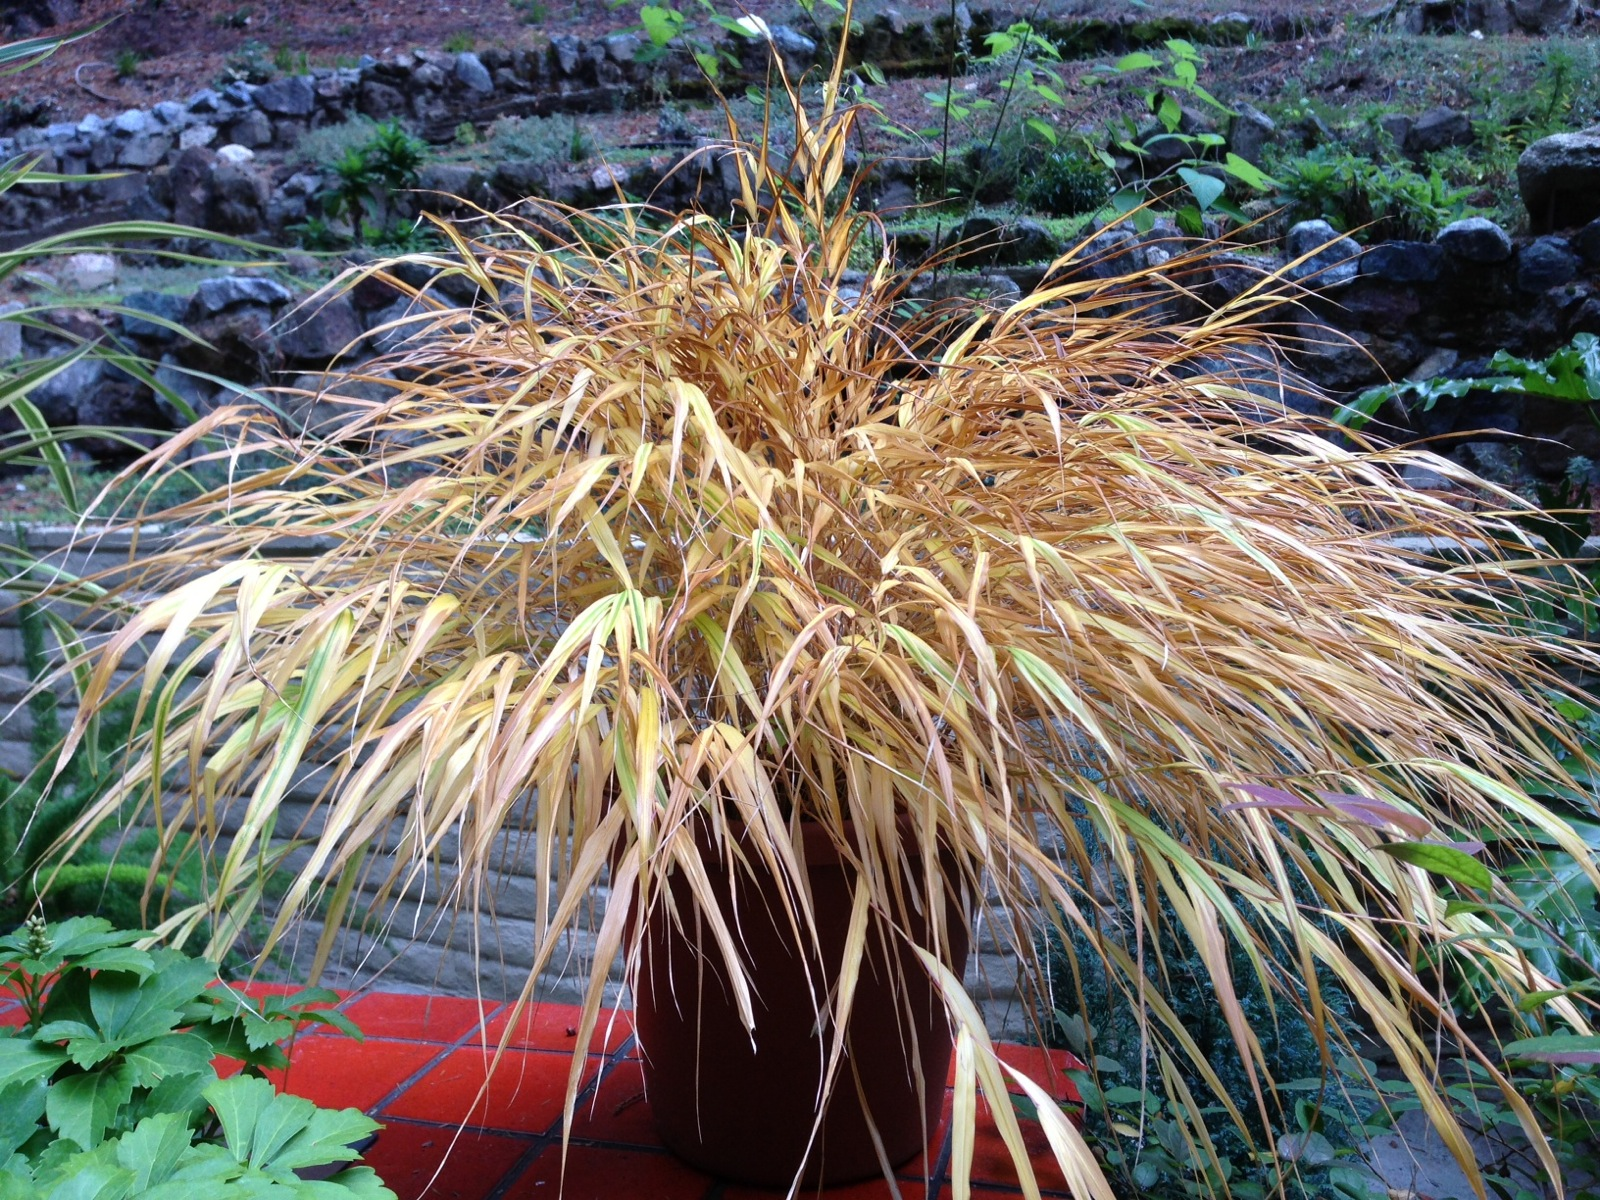 Caring for ornamental grasses gardening tips for the santa cruz fountain grass you hakonechloawinter1600 can prune workwithnaturefo